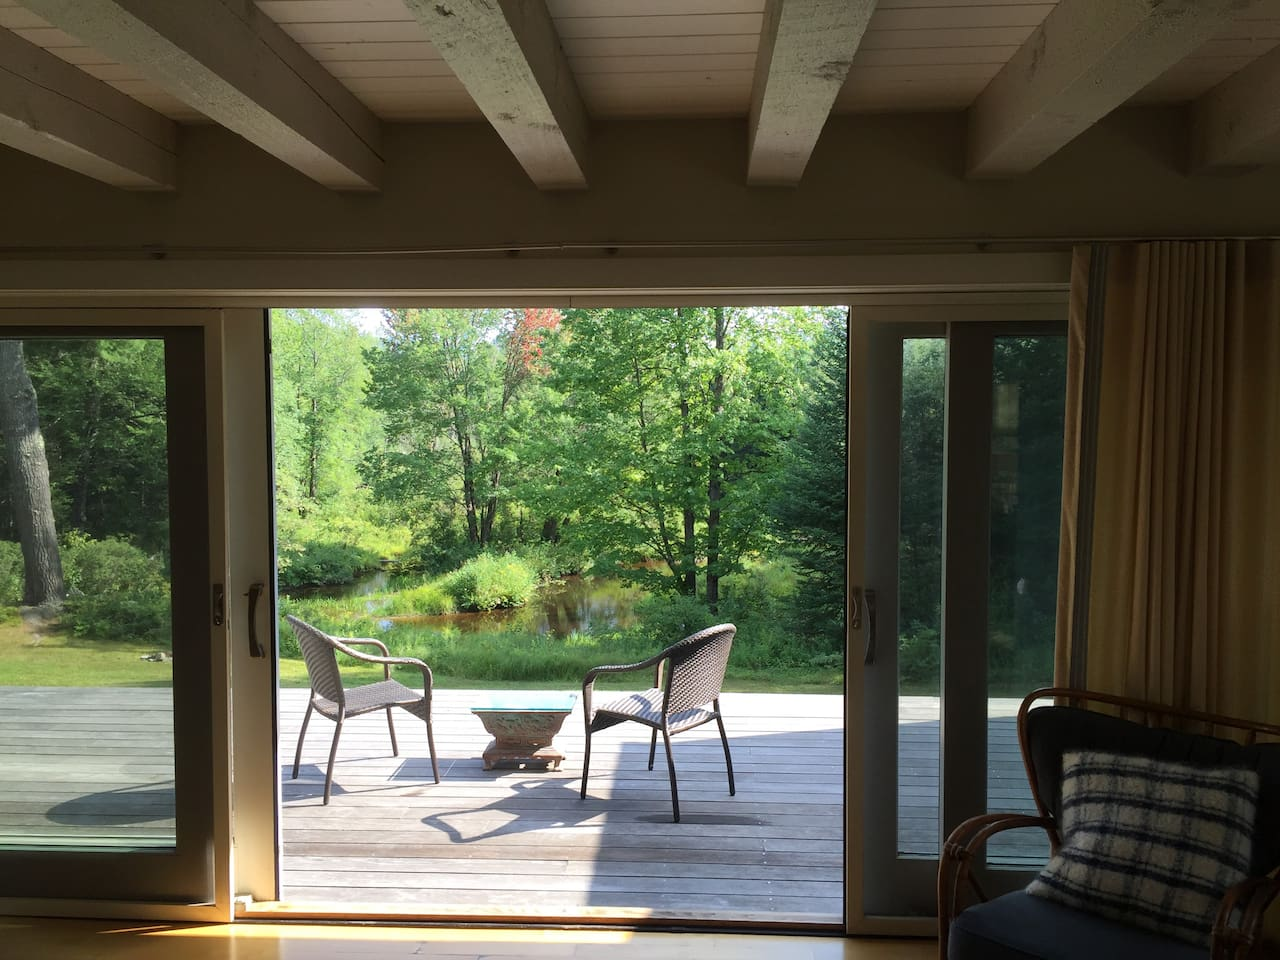 Sliding doors to deck off main floor living space — your own private picture of nature.